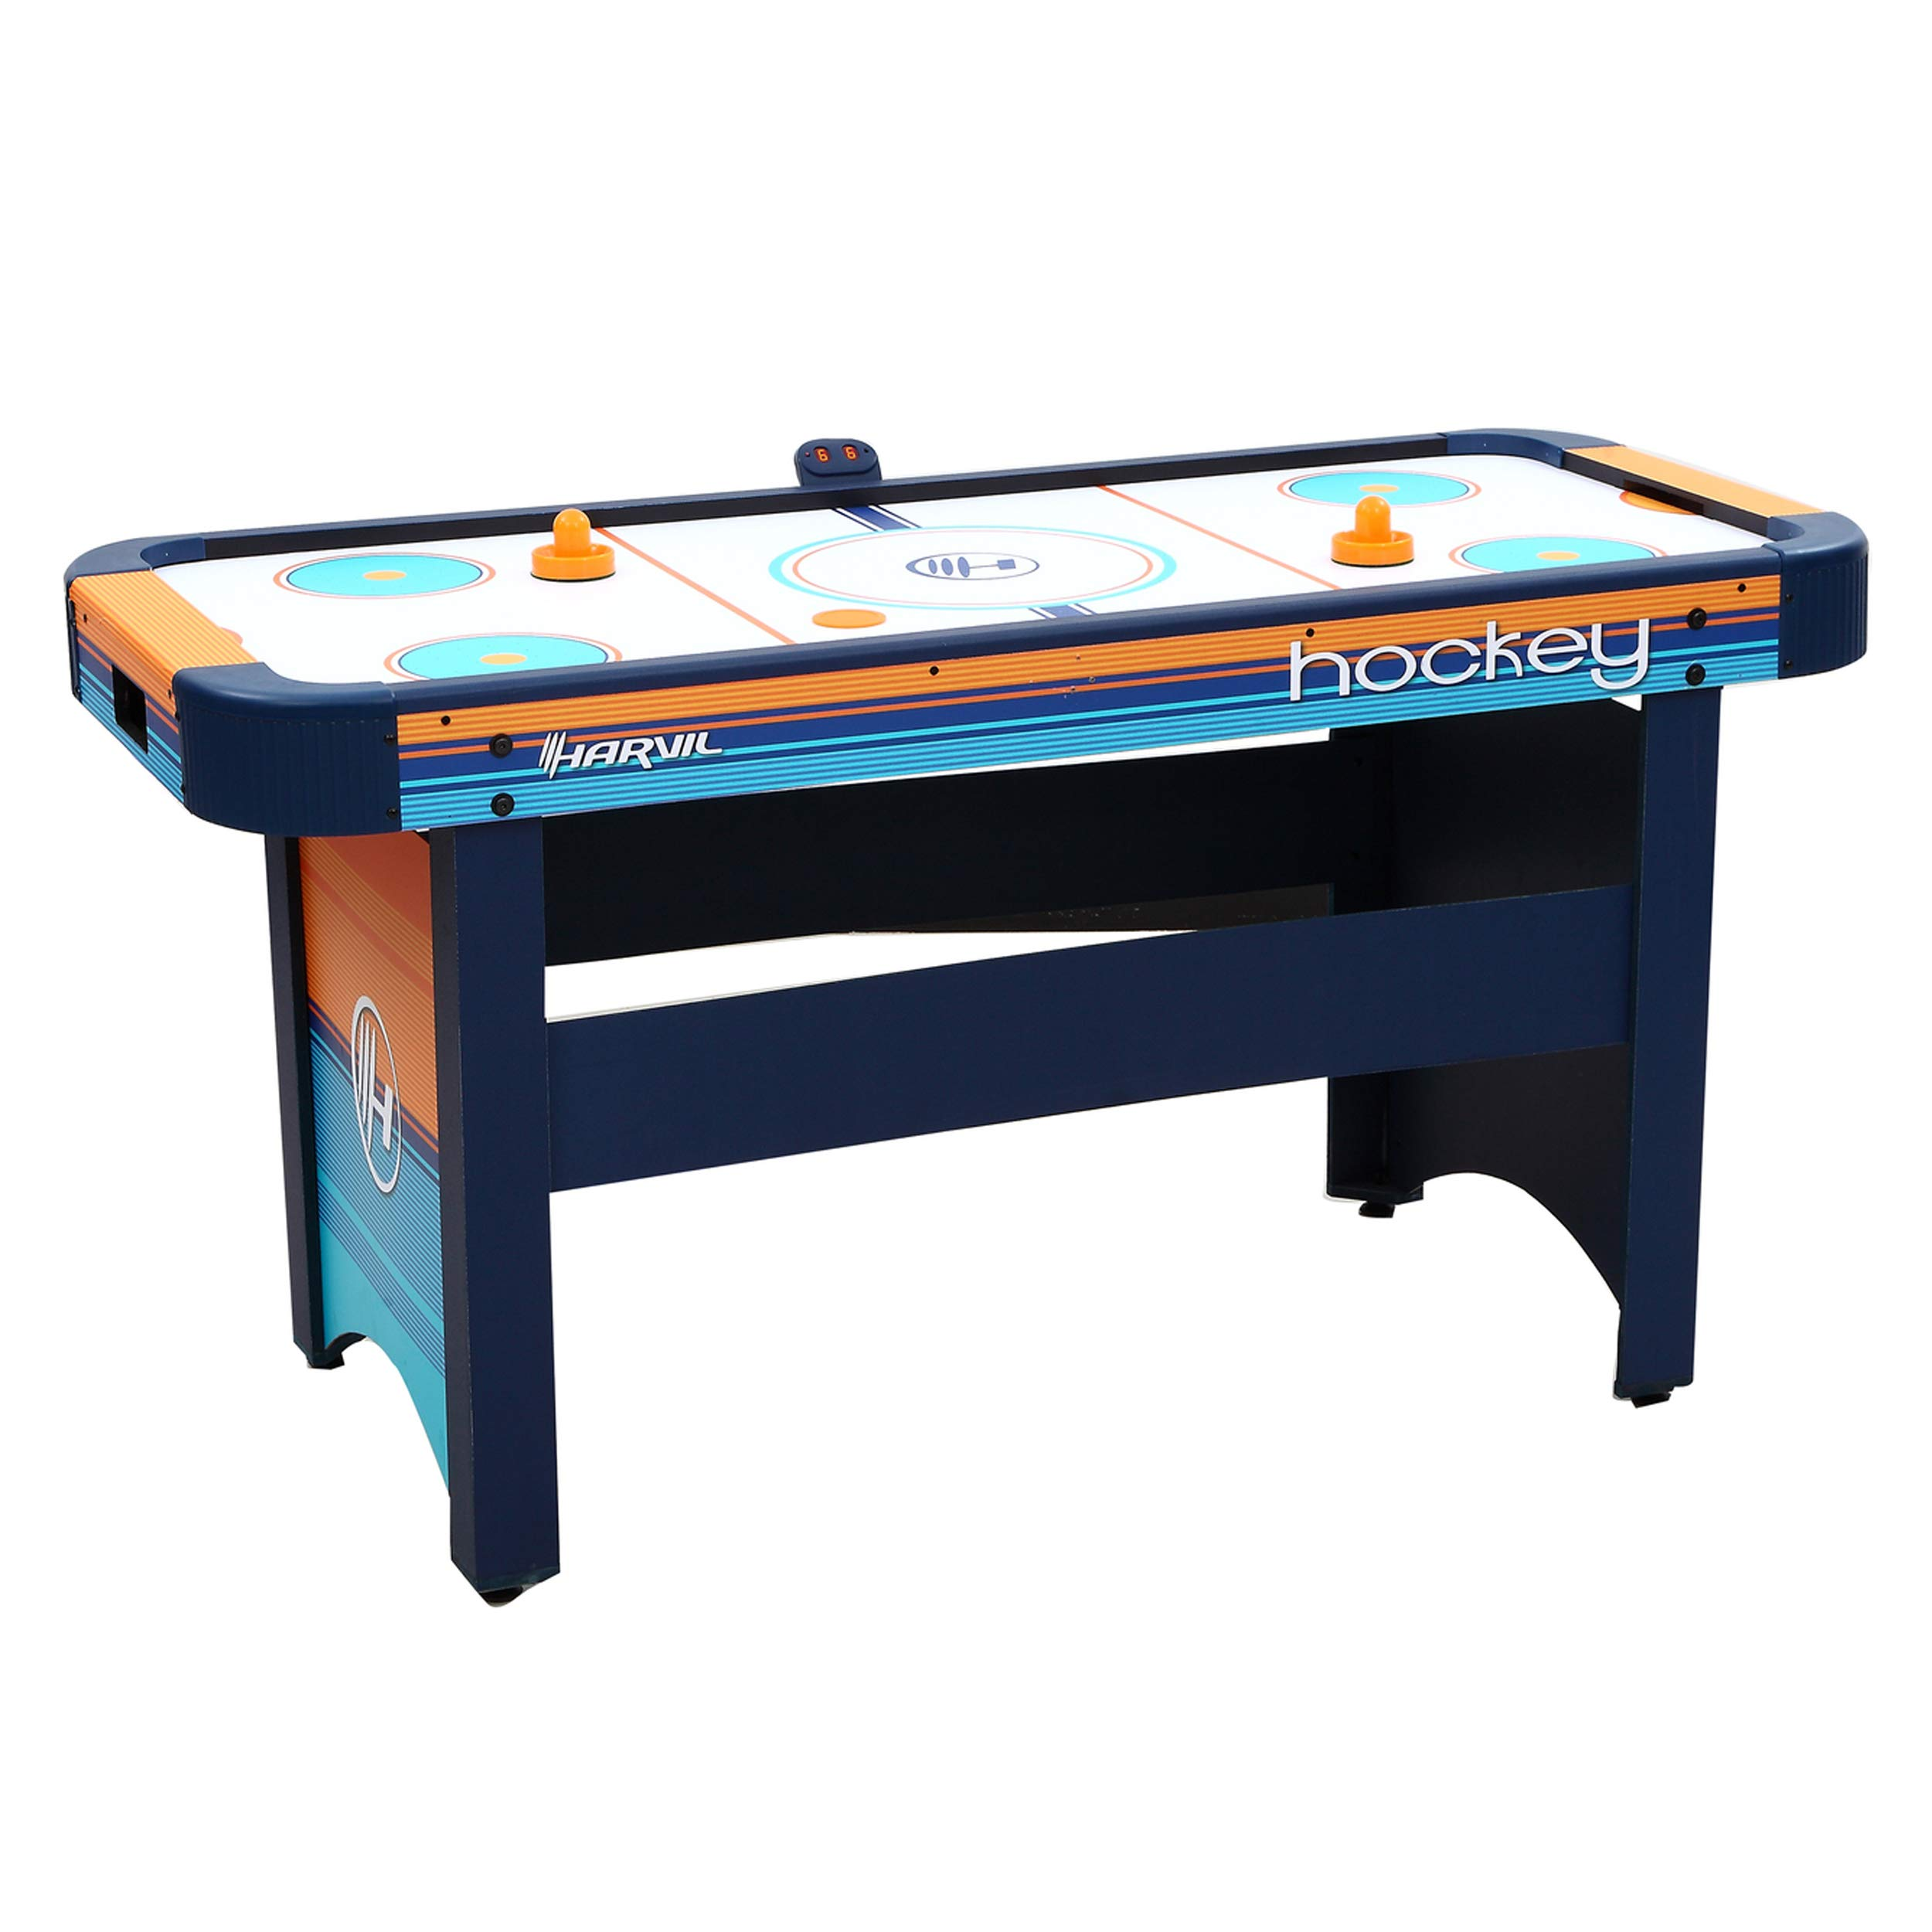 Harvil 5 Foot Air Hockey Table for Kids and Adults with Dual Electric Blowers, Leg Levelers and Free Pushers and Pucks. by Harvil